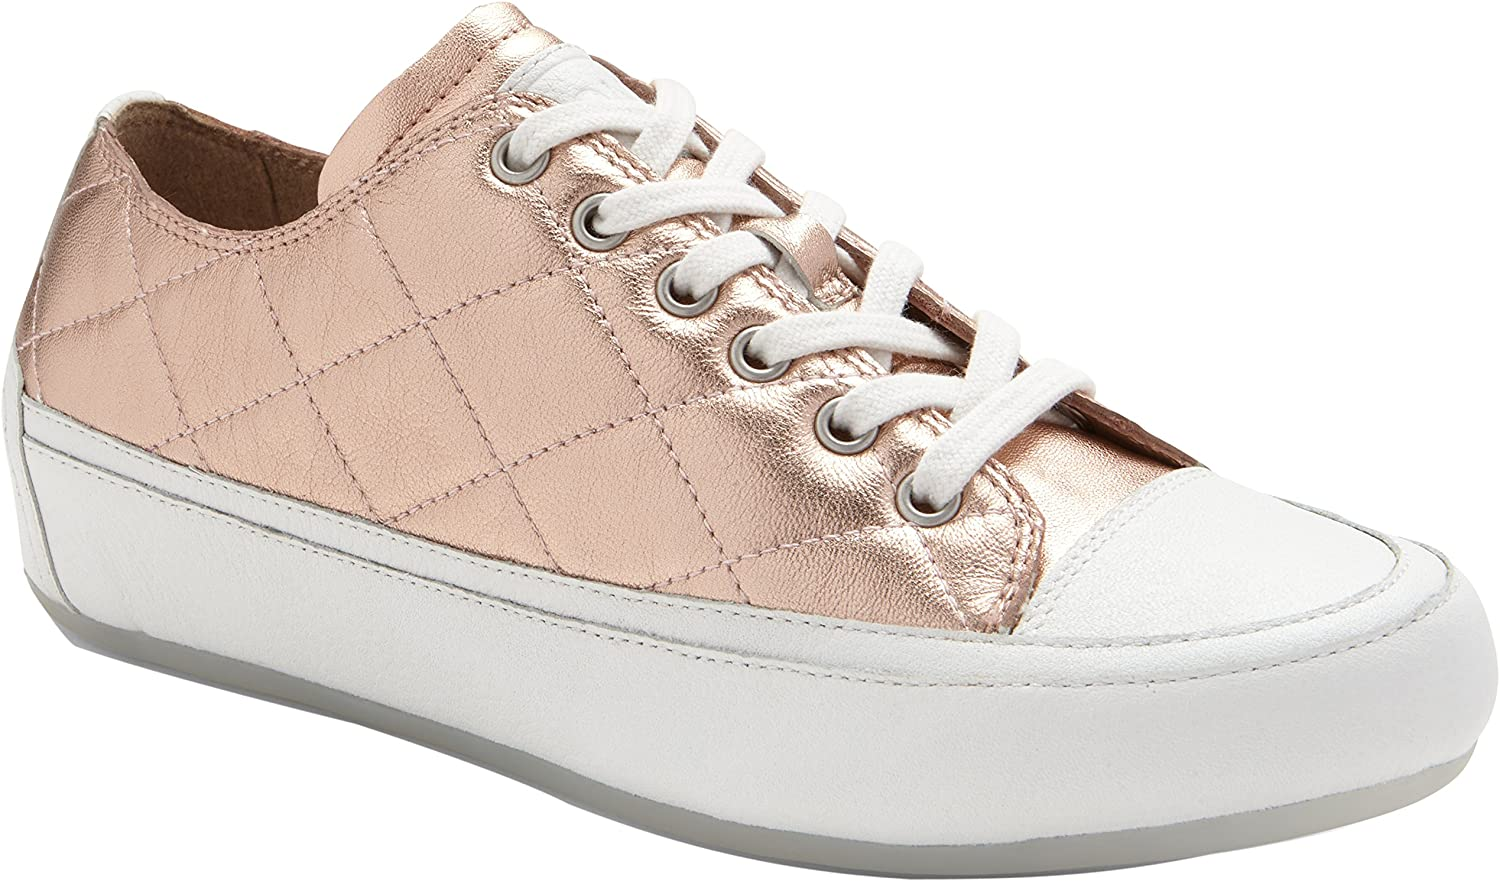 Vionic Womens Delight Edie Lace Up Sneaker, pink gold, Size 5